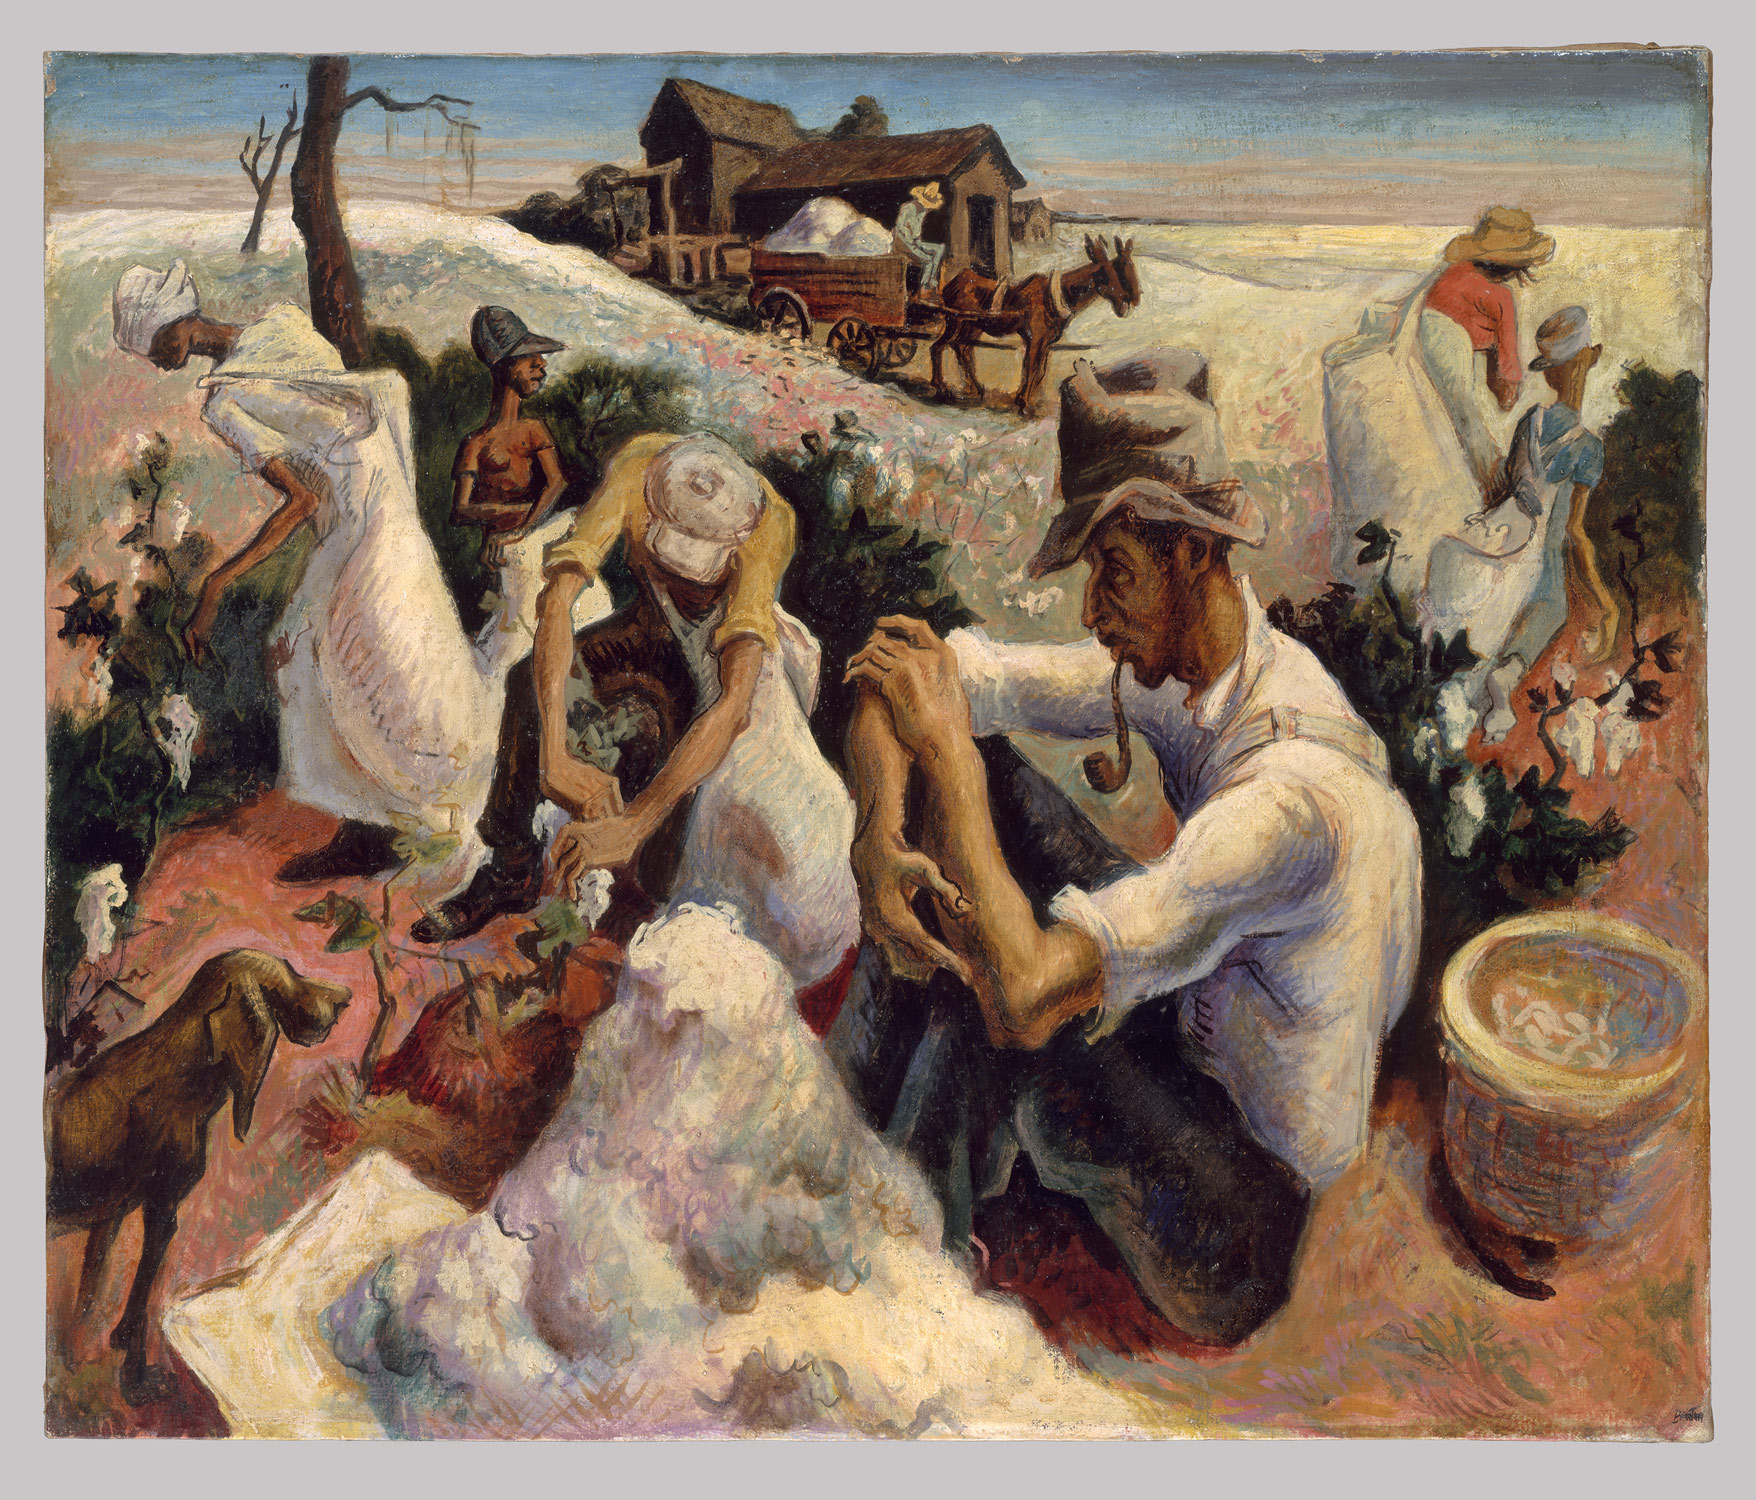 Cotton Pickers, Georgia